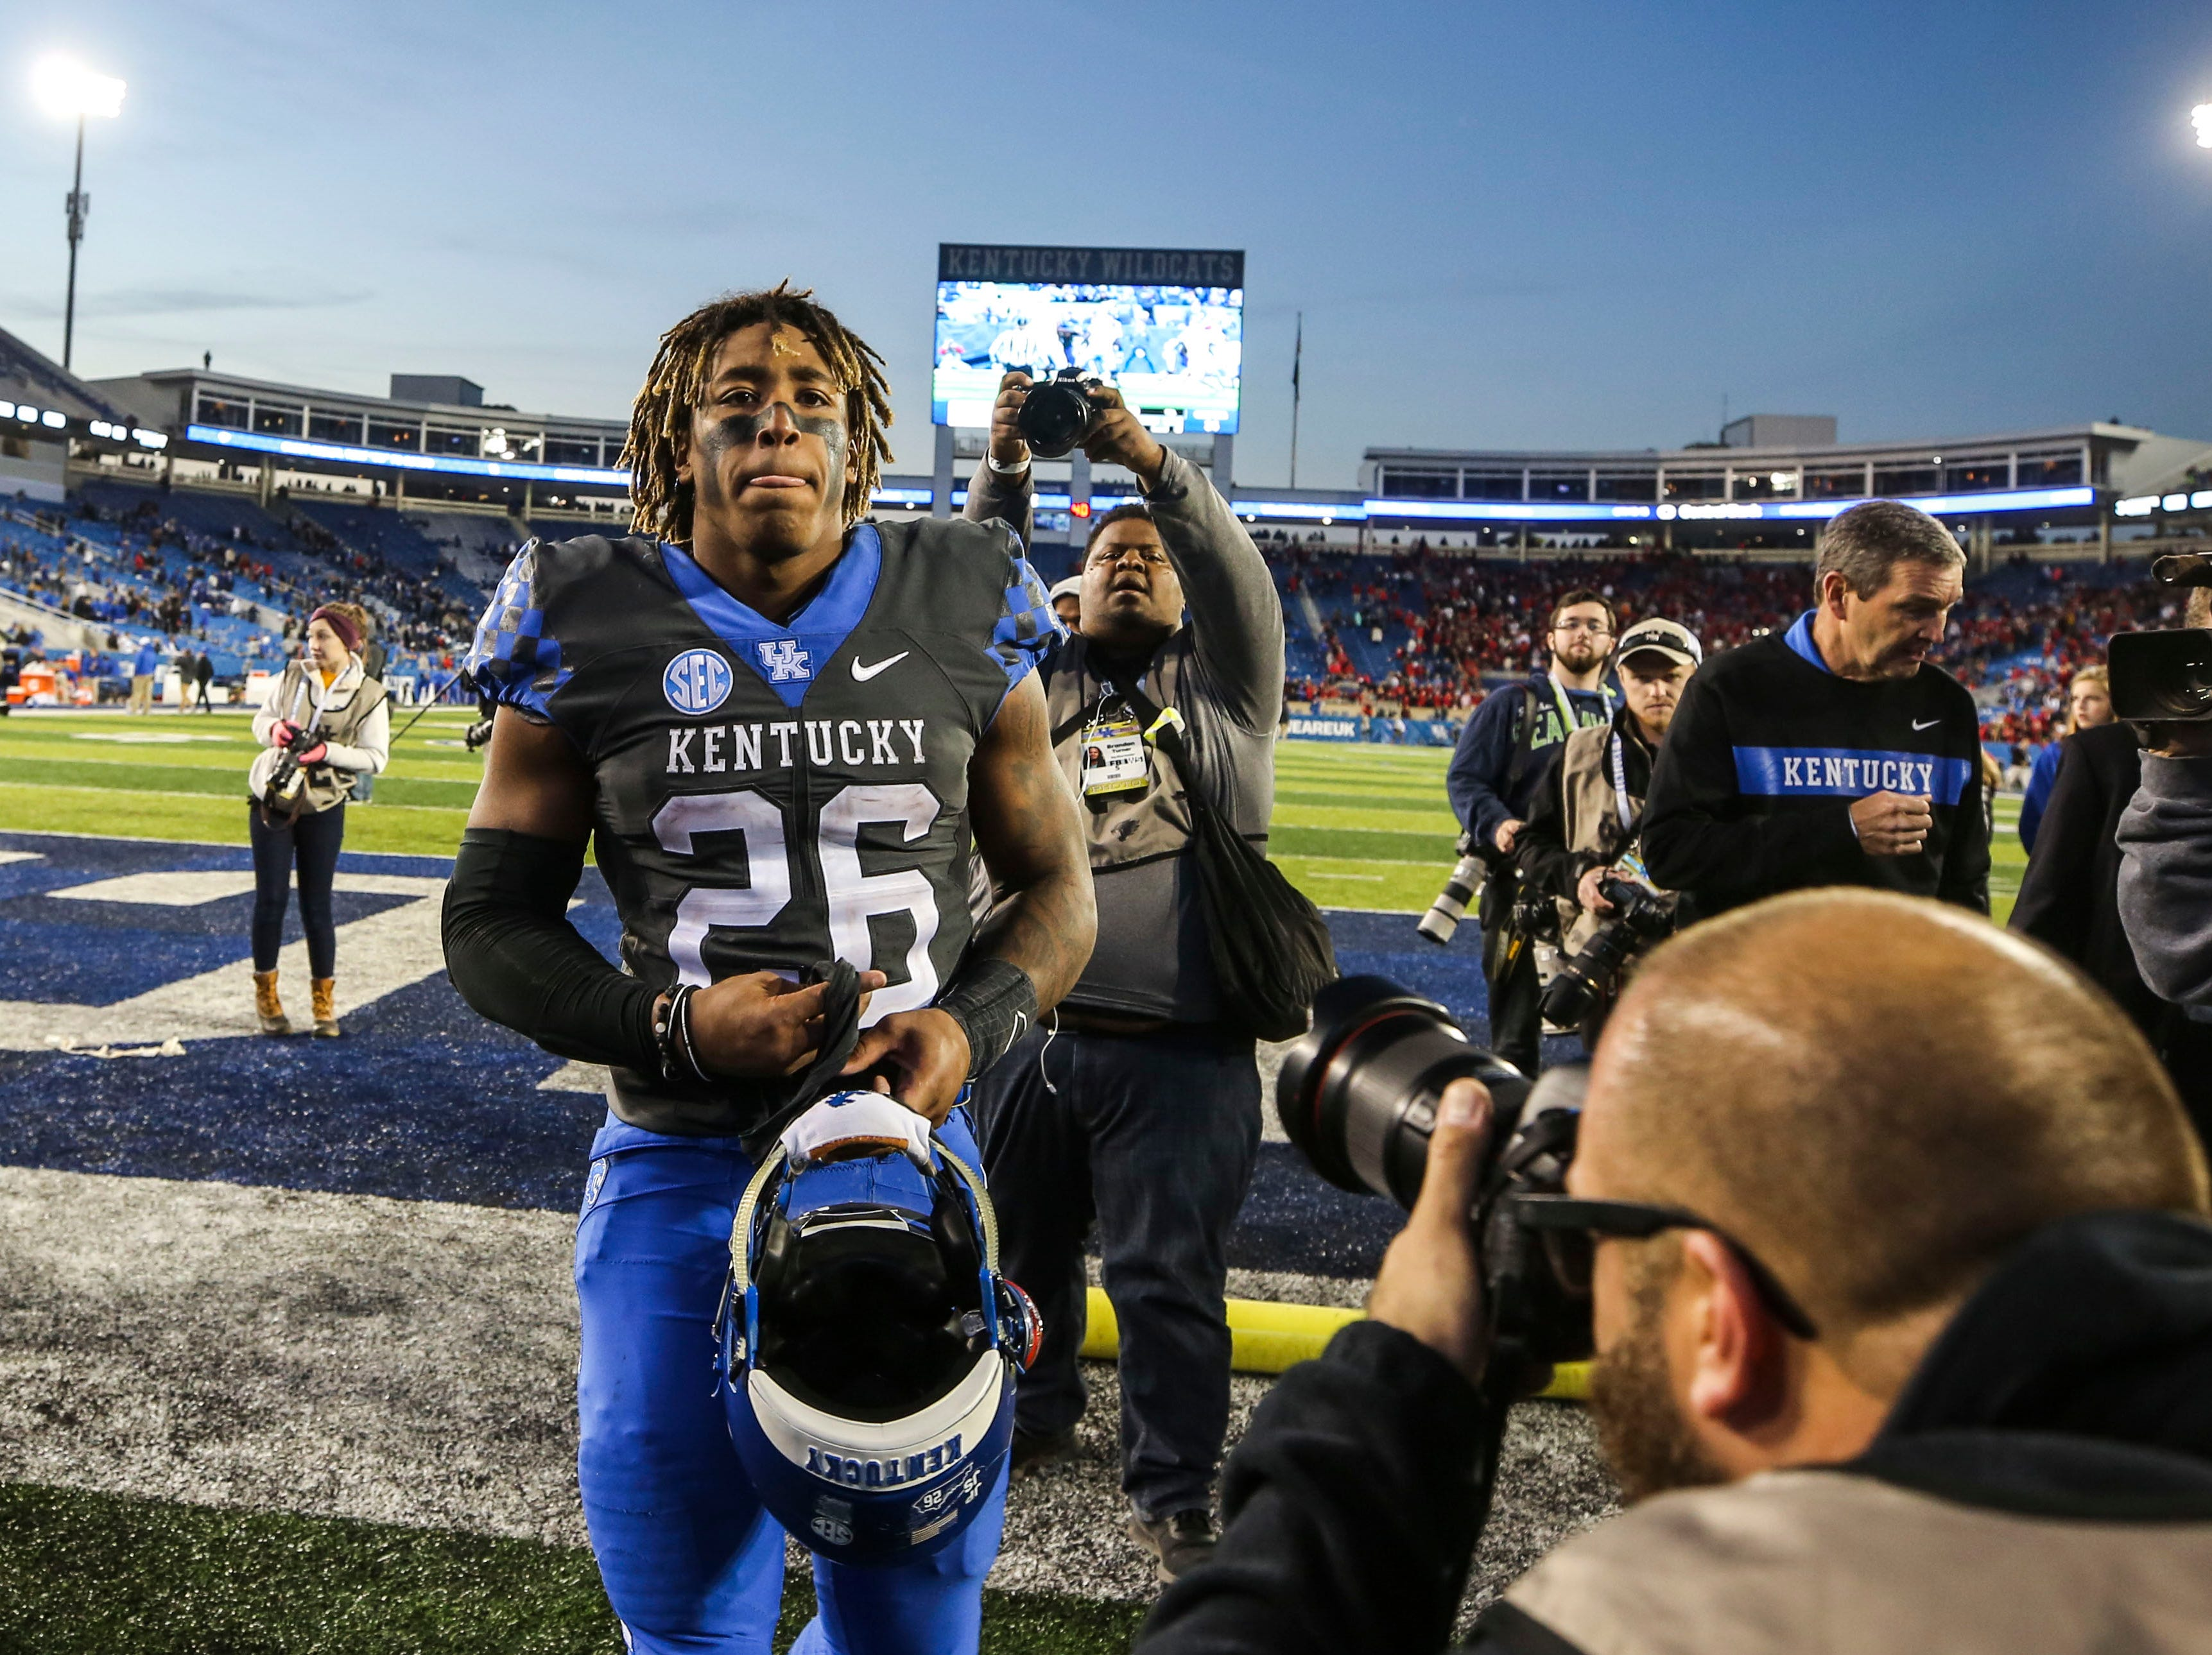 Kentucky's Benny Snell walks towards the lorcker room after a disappointing loss to Georgia Saturday night, ending the Wildcats' hopes for an SEC East title. Nov. 3, 2018